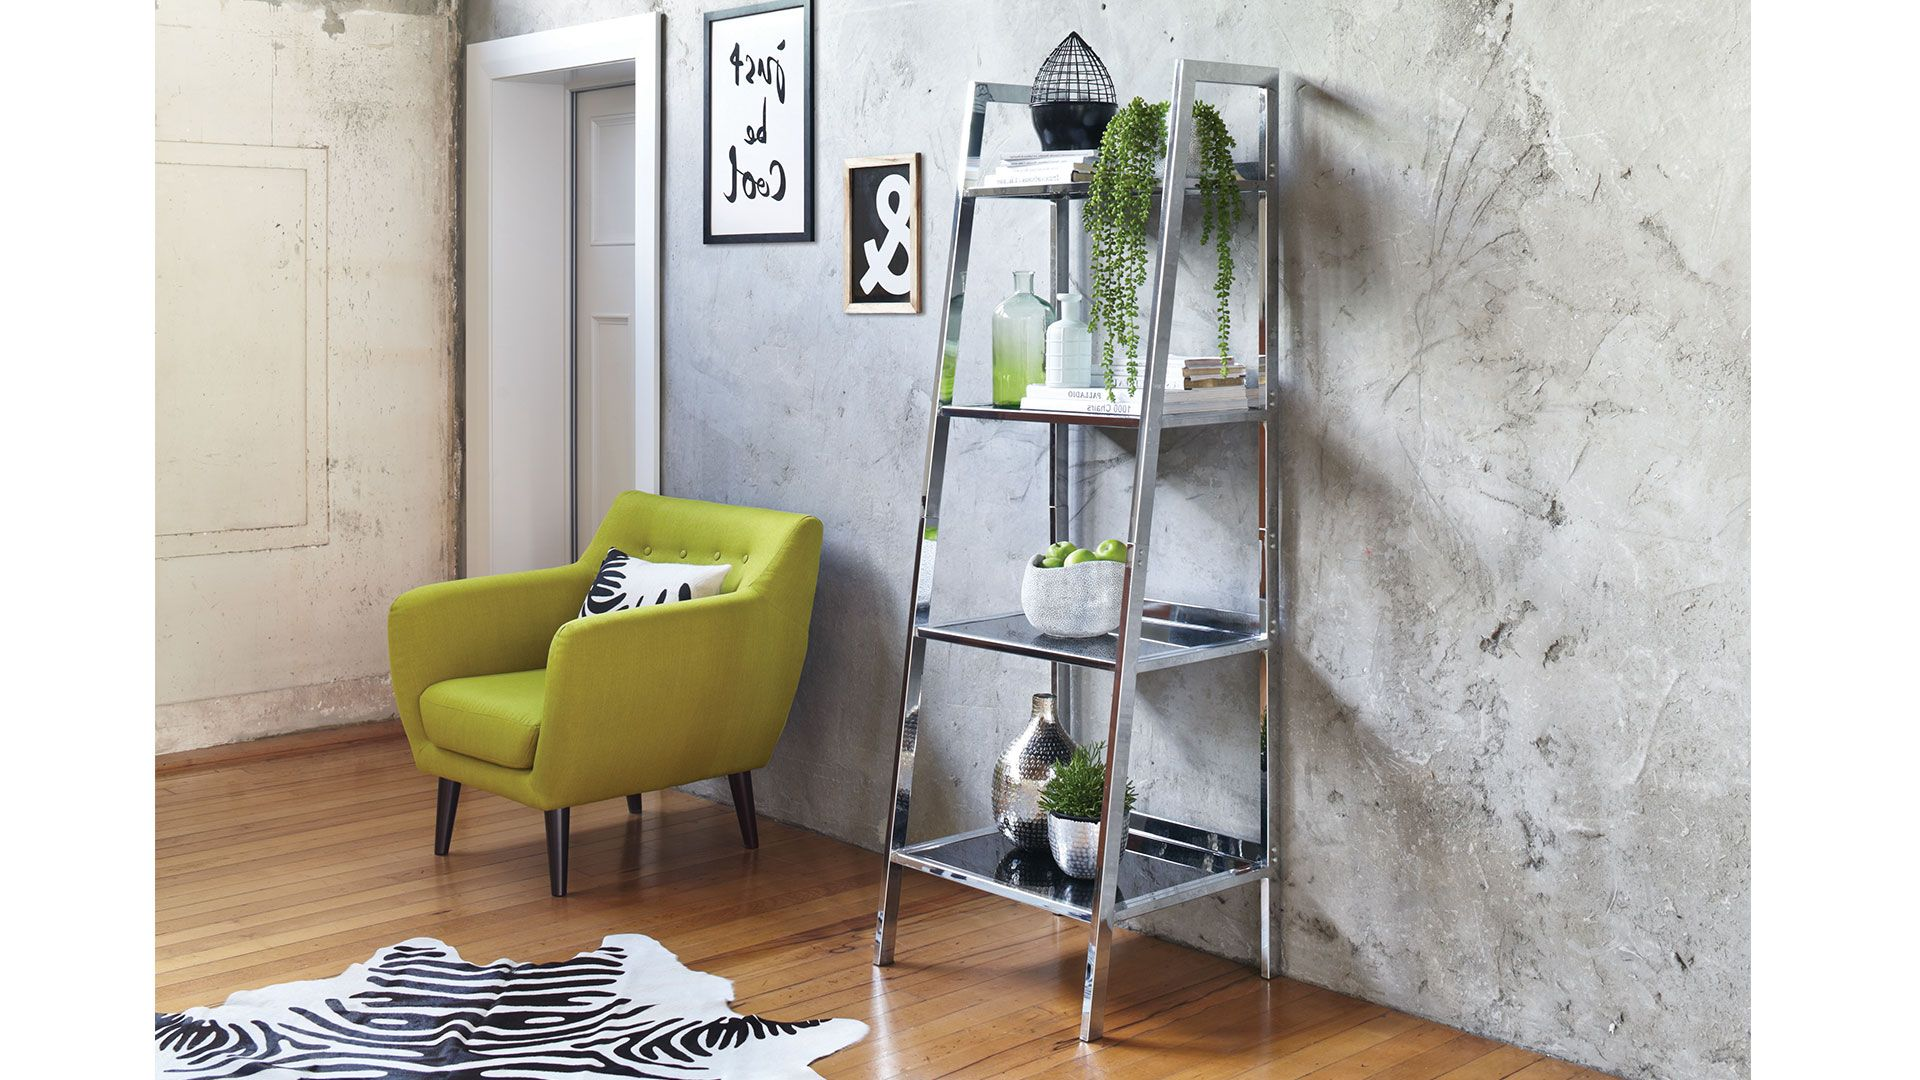 The arnoux ladder shelf is a sleek smart and modern piece of